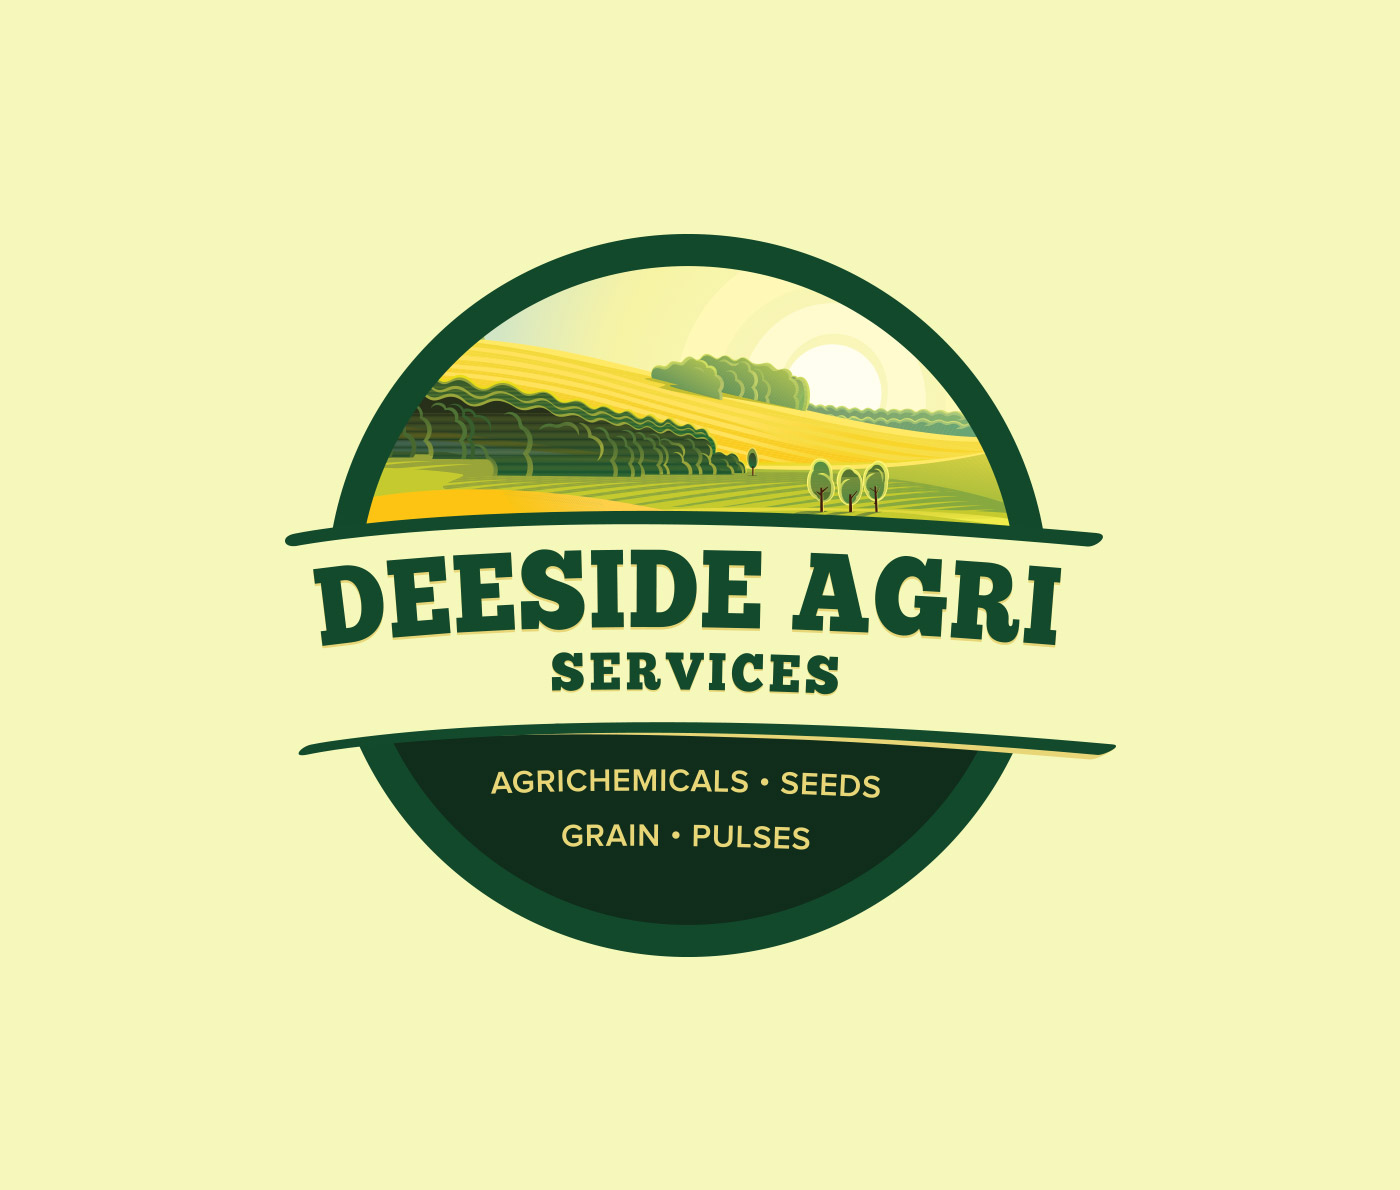 Deeside Agri Services